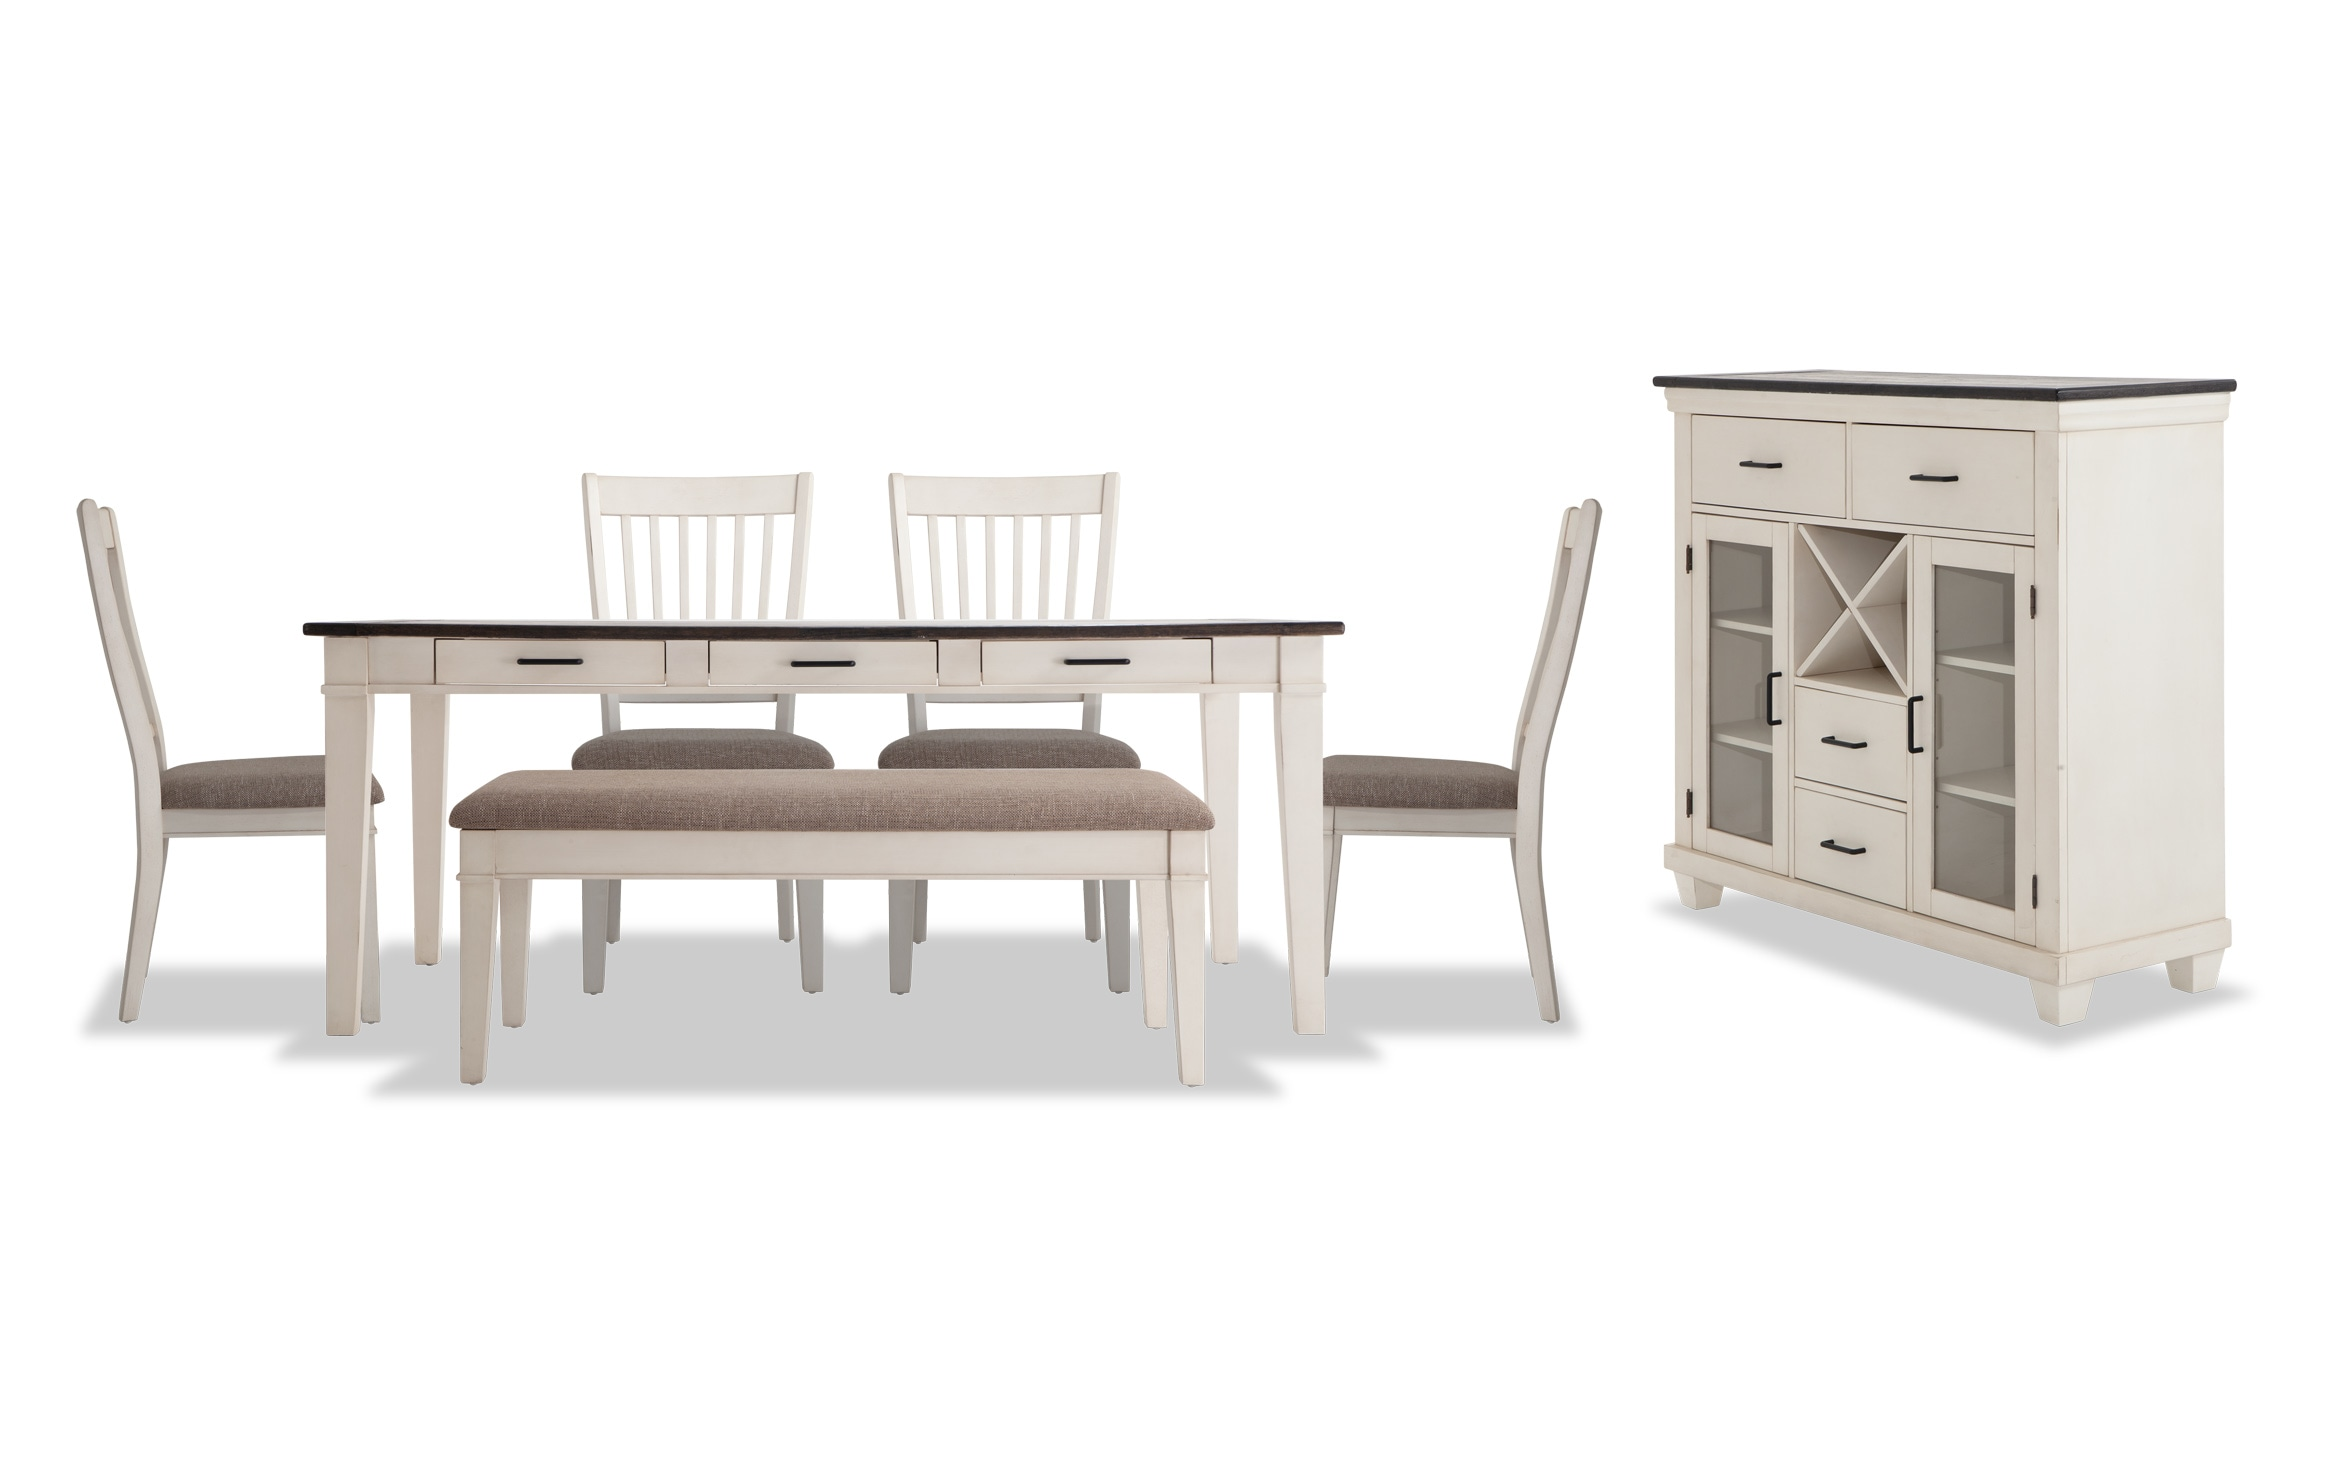 Montana 9 Piece Dining Set with Storage Bench and Server